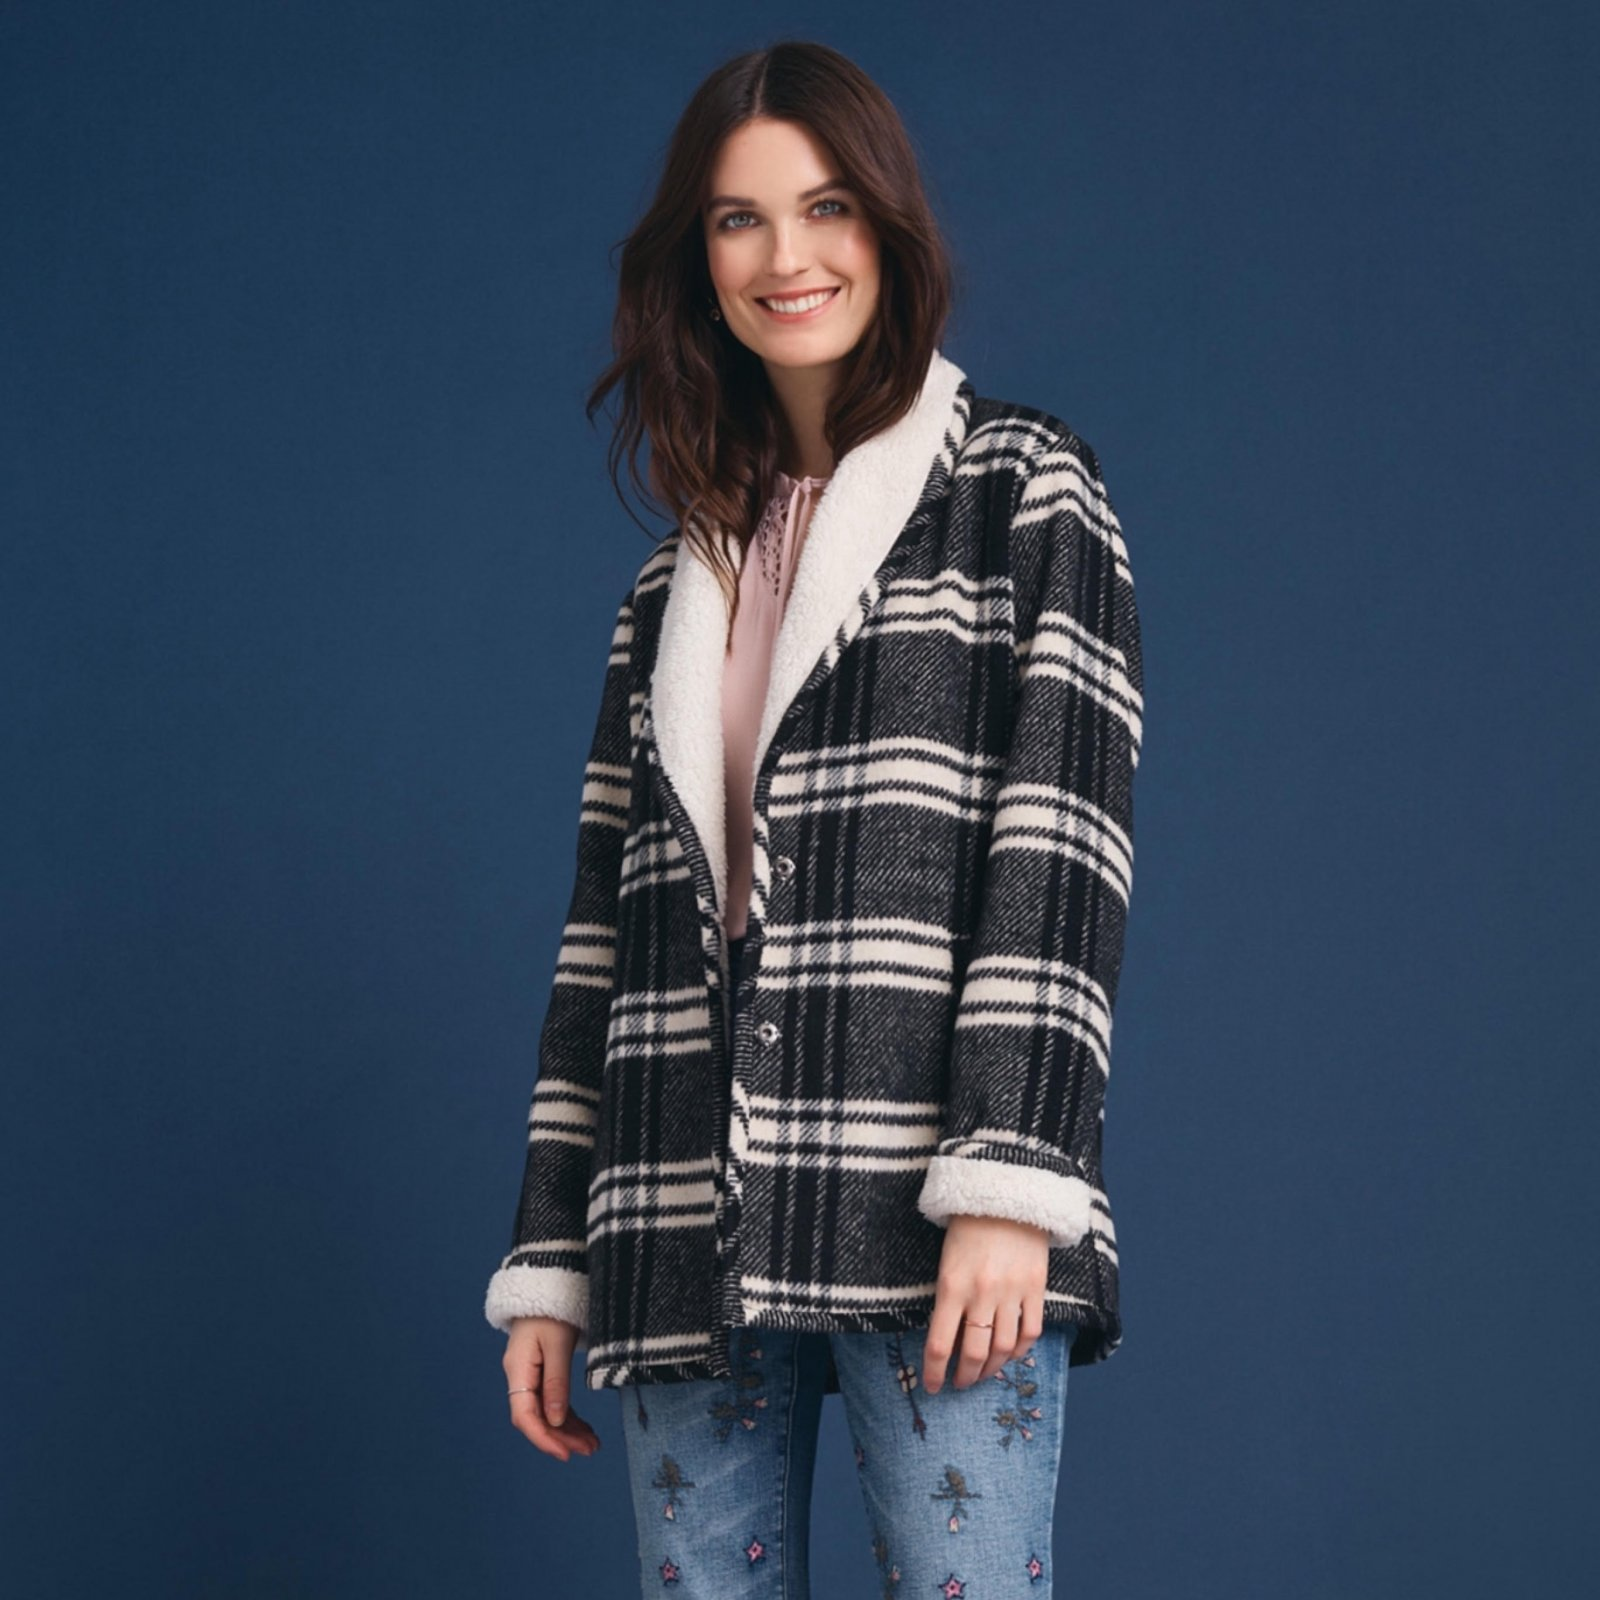 Black & White Plaid Jacket from Tribal